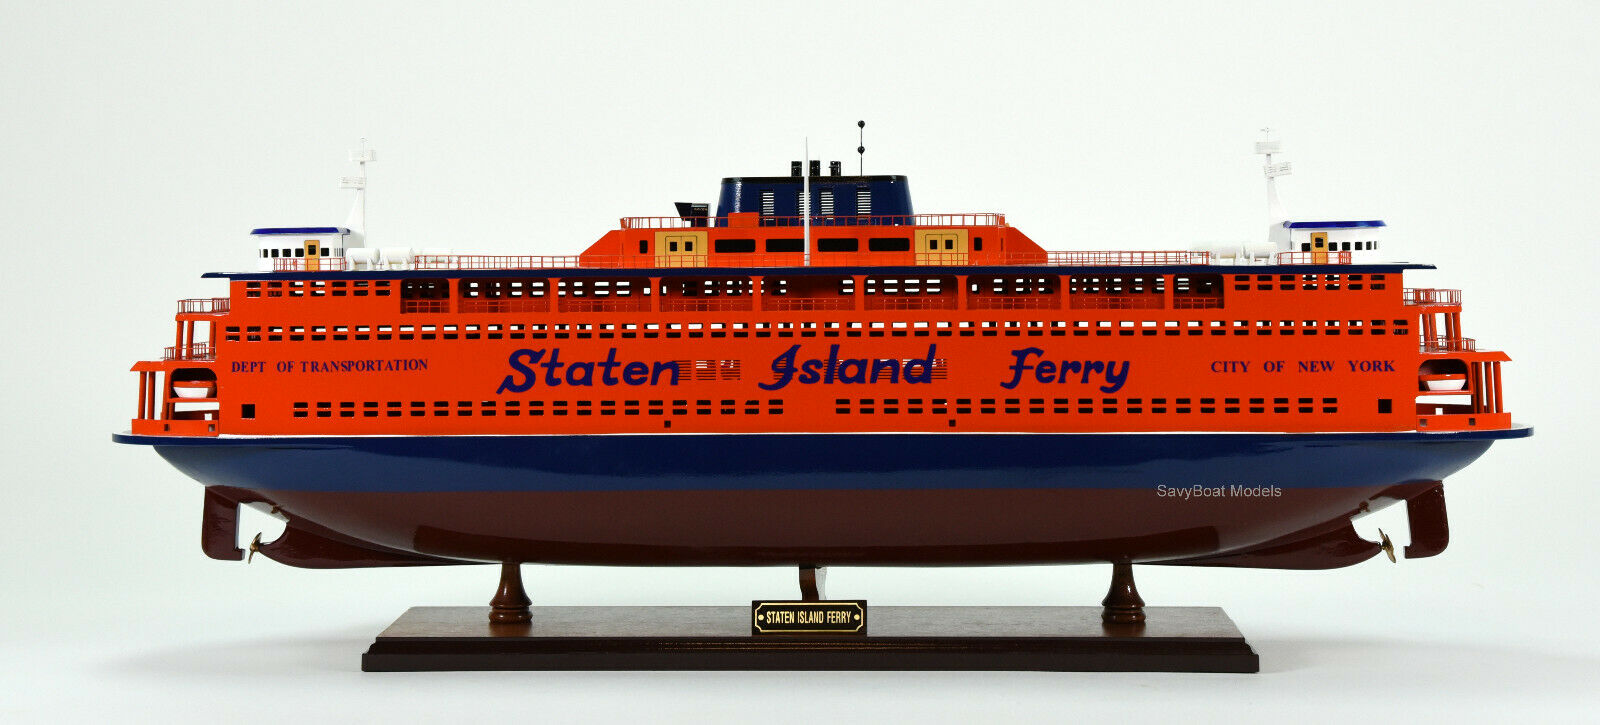 Staten Island Ferry Boat Wooden Model 32 Handmade Statue Of Liberty Ship